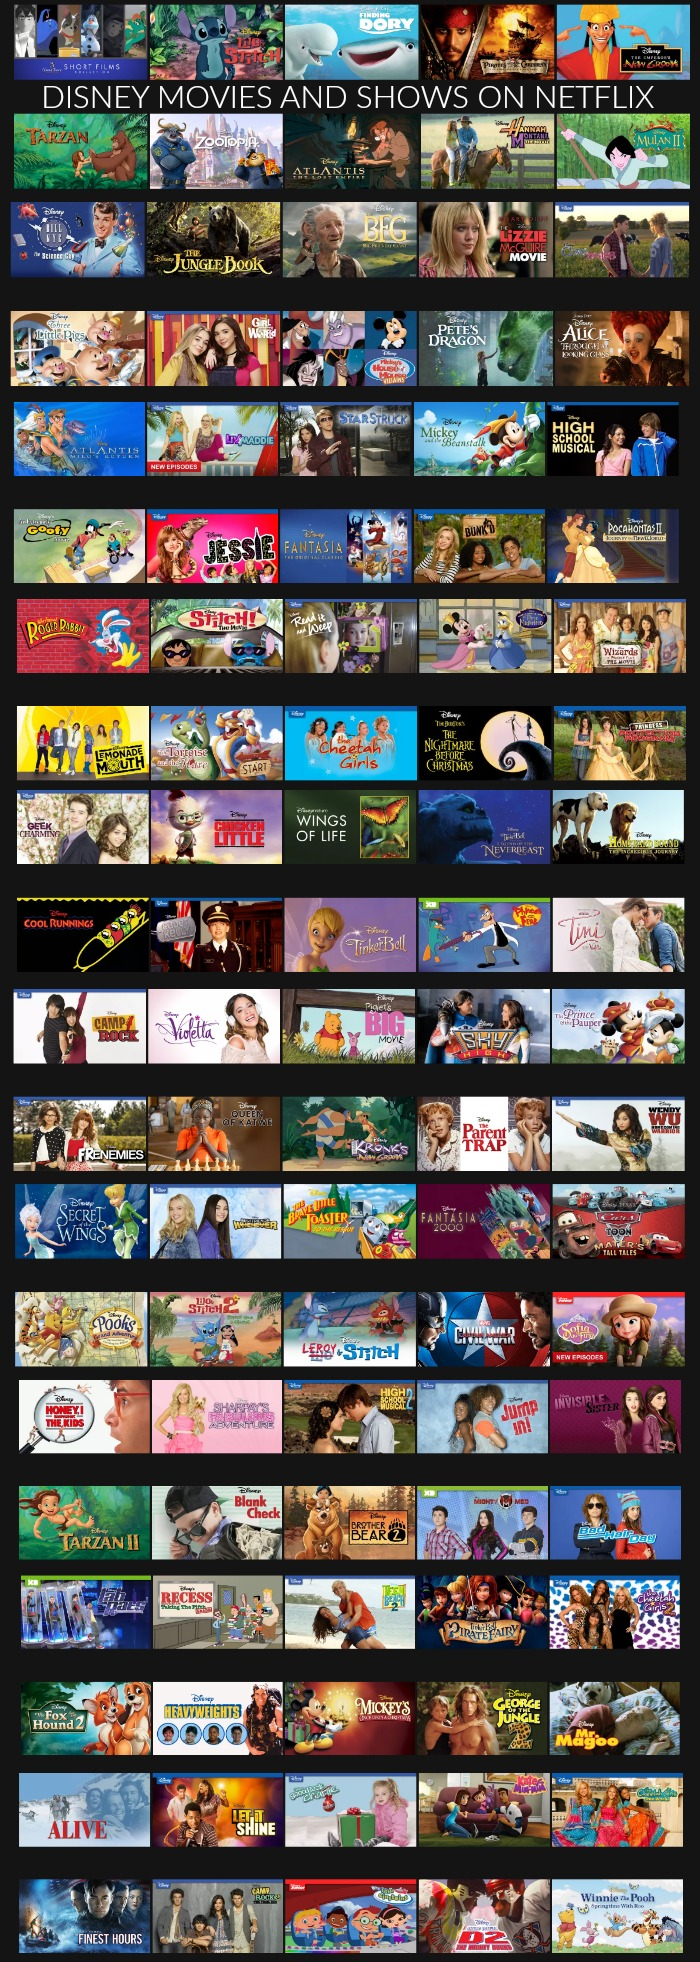 Don't get bored this summer! There are SO many Disney Movies on Netflix!!